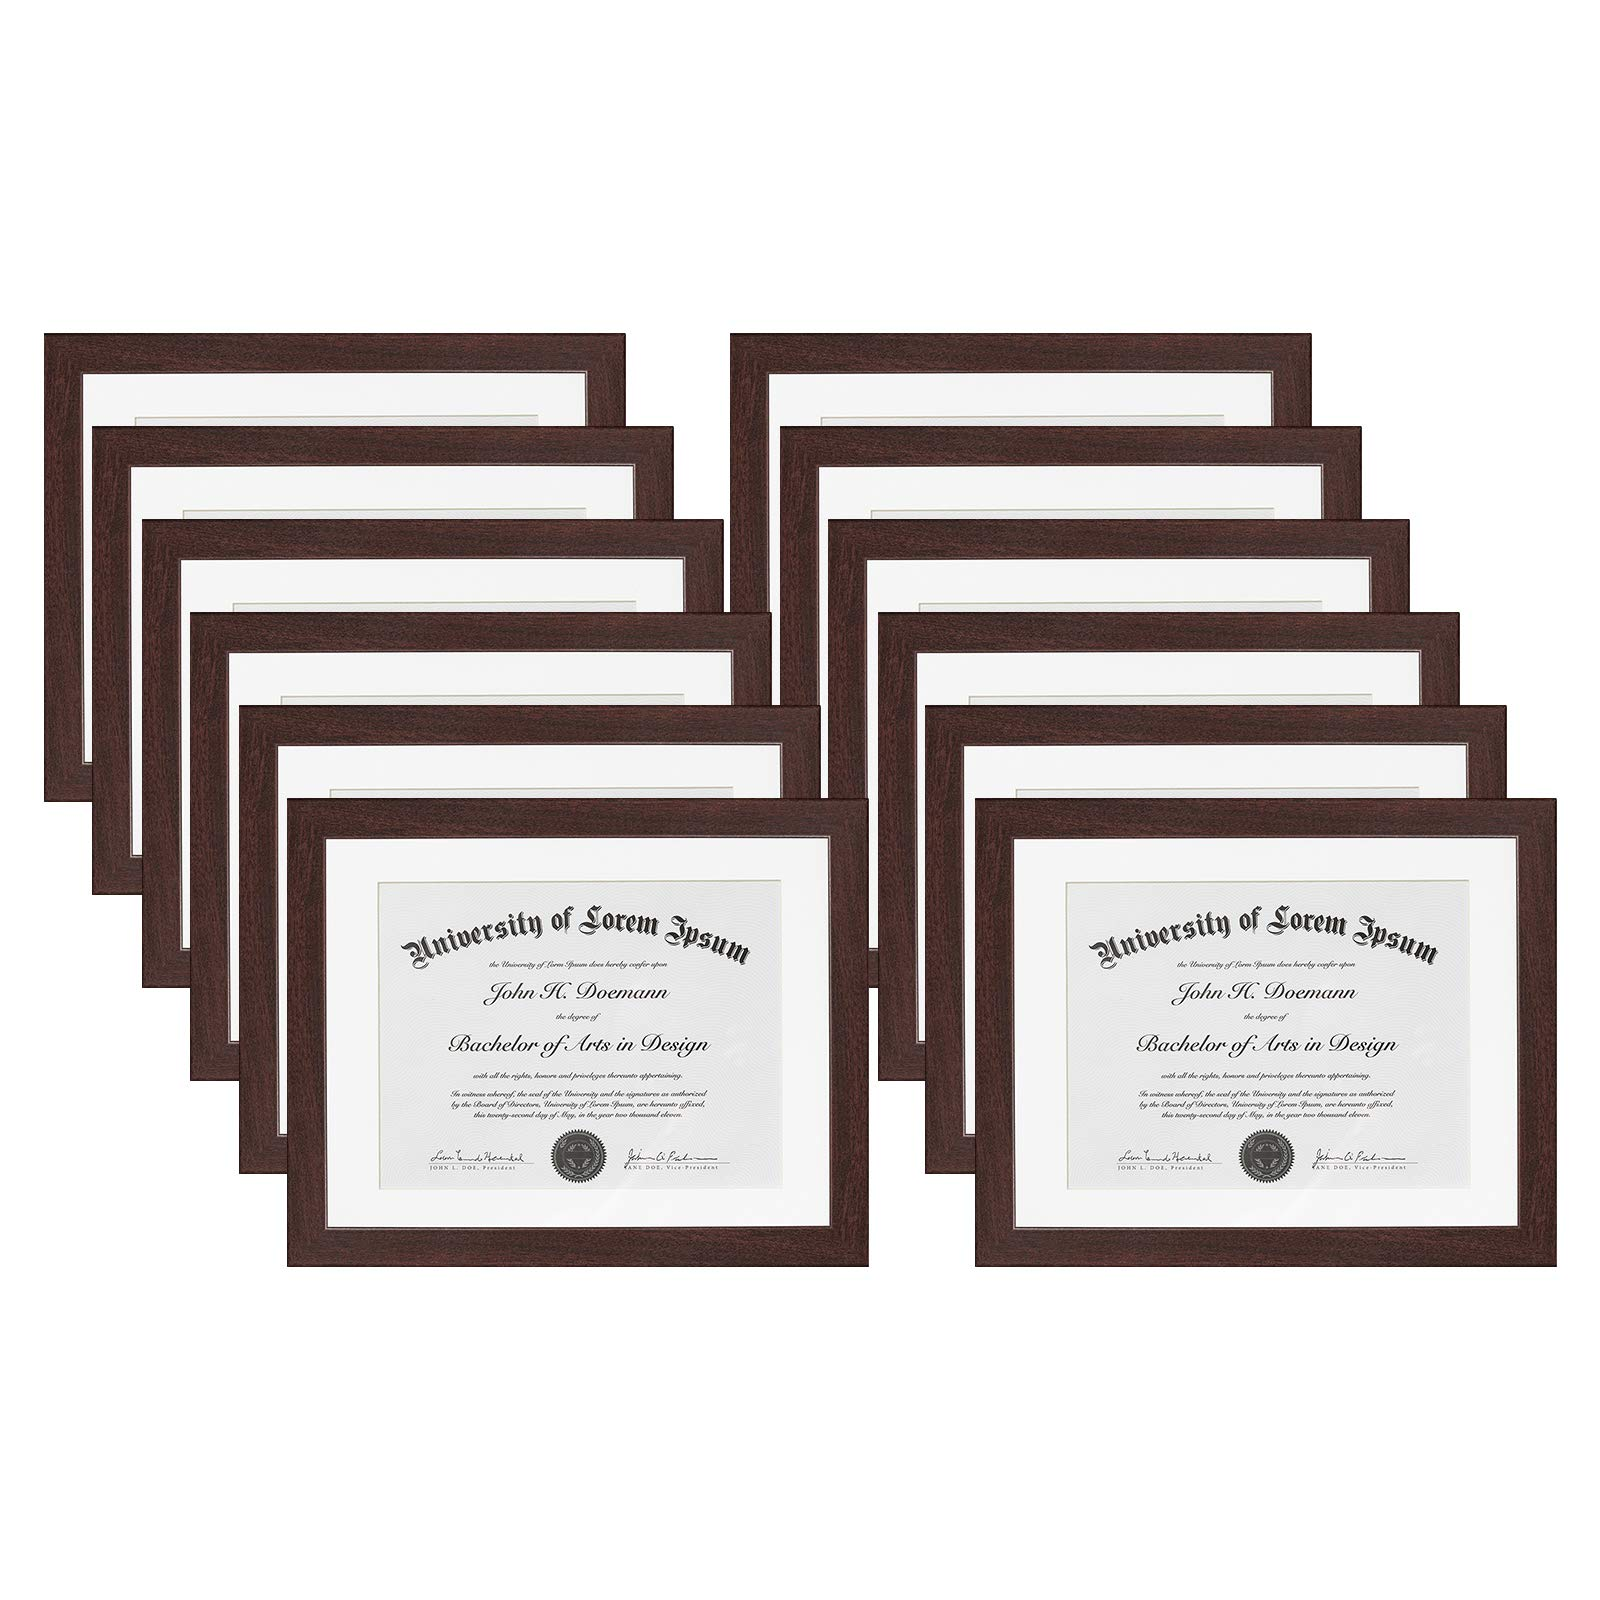 Americanflat 12 Pack - Mahogany Document Frames - Display Documents Sized 8.5x11 Inches with Mat and 11x14 Inches Without Mat - Document Frames, Certification Frames, High School Diploma Frames